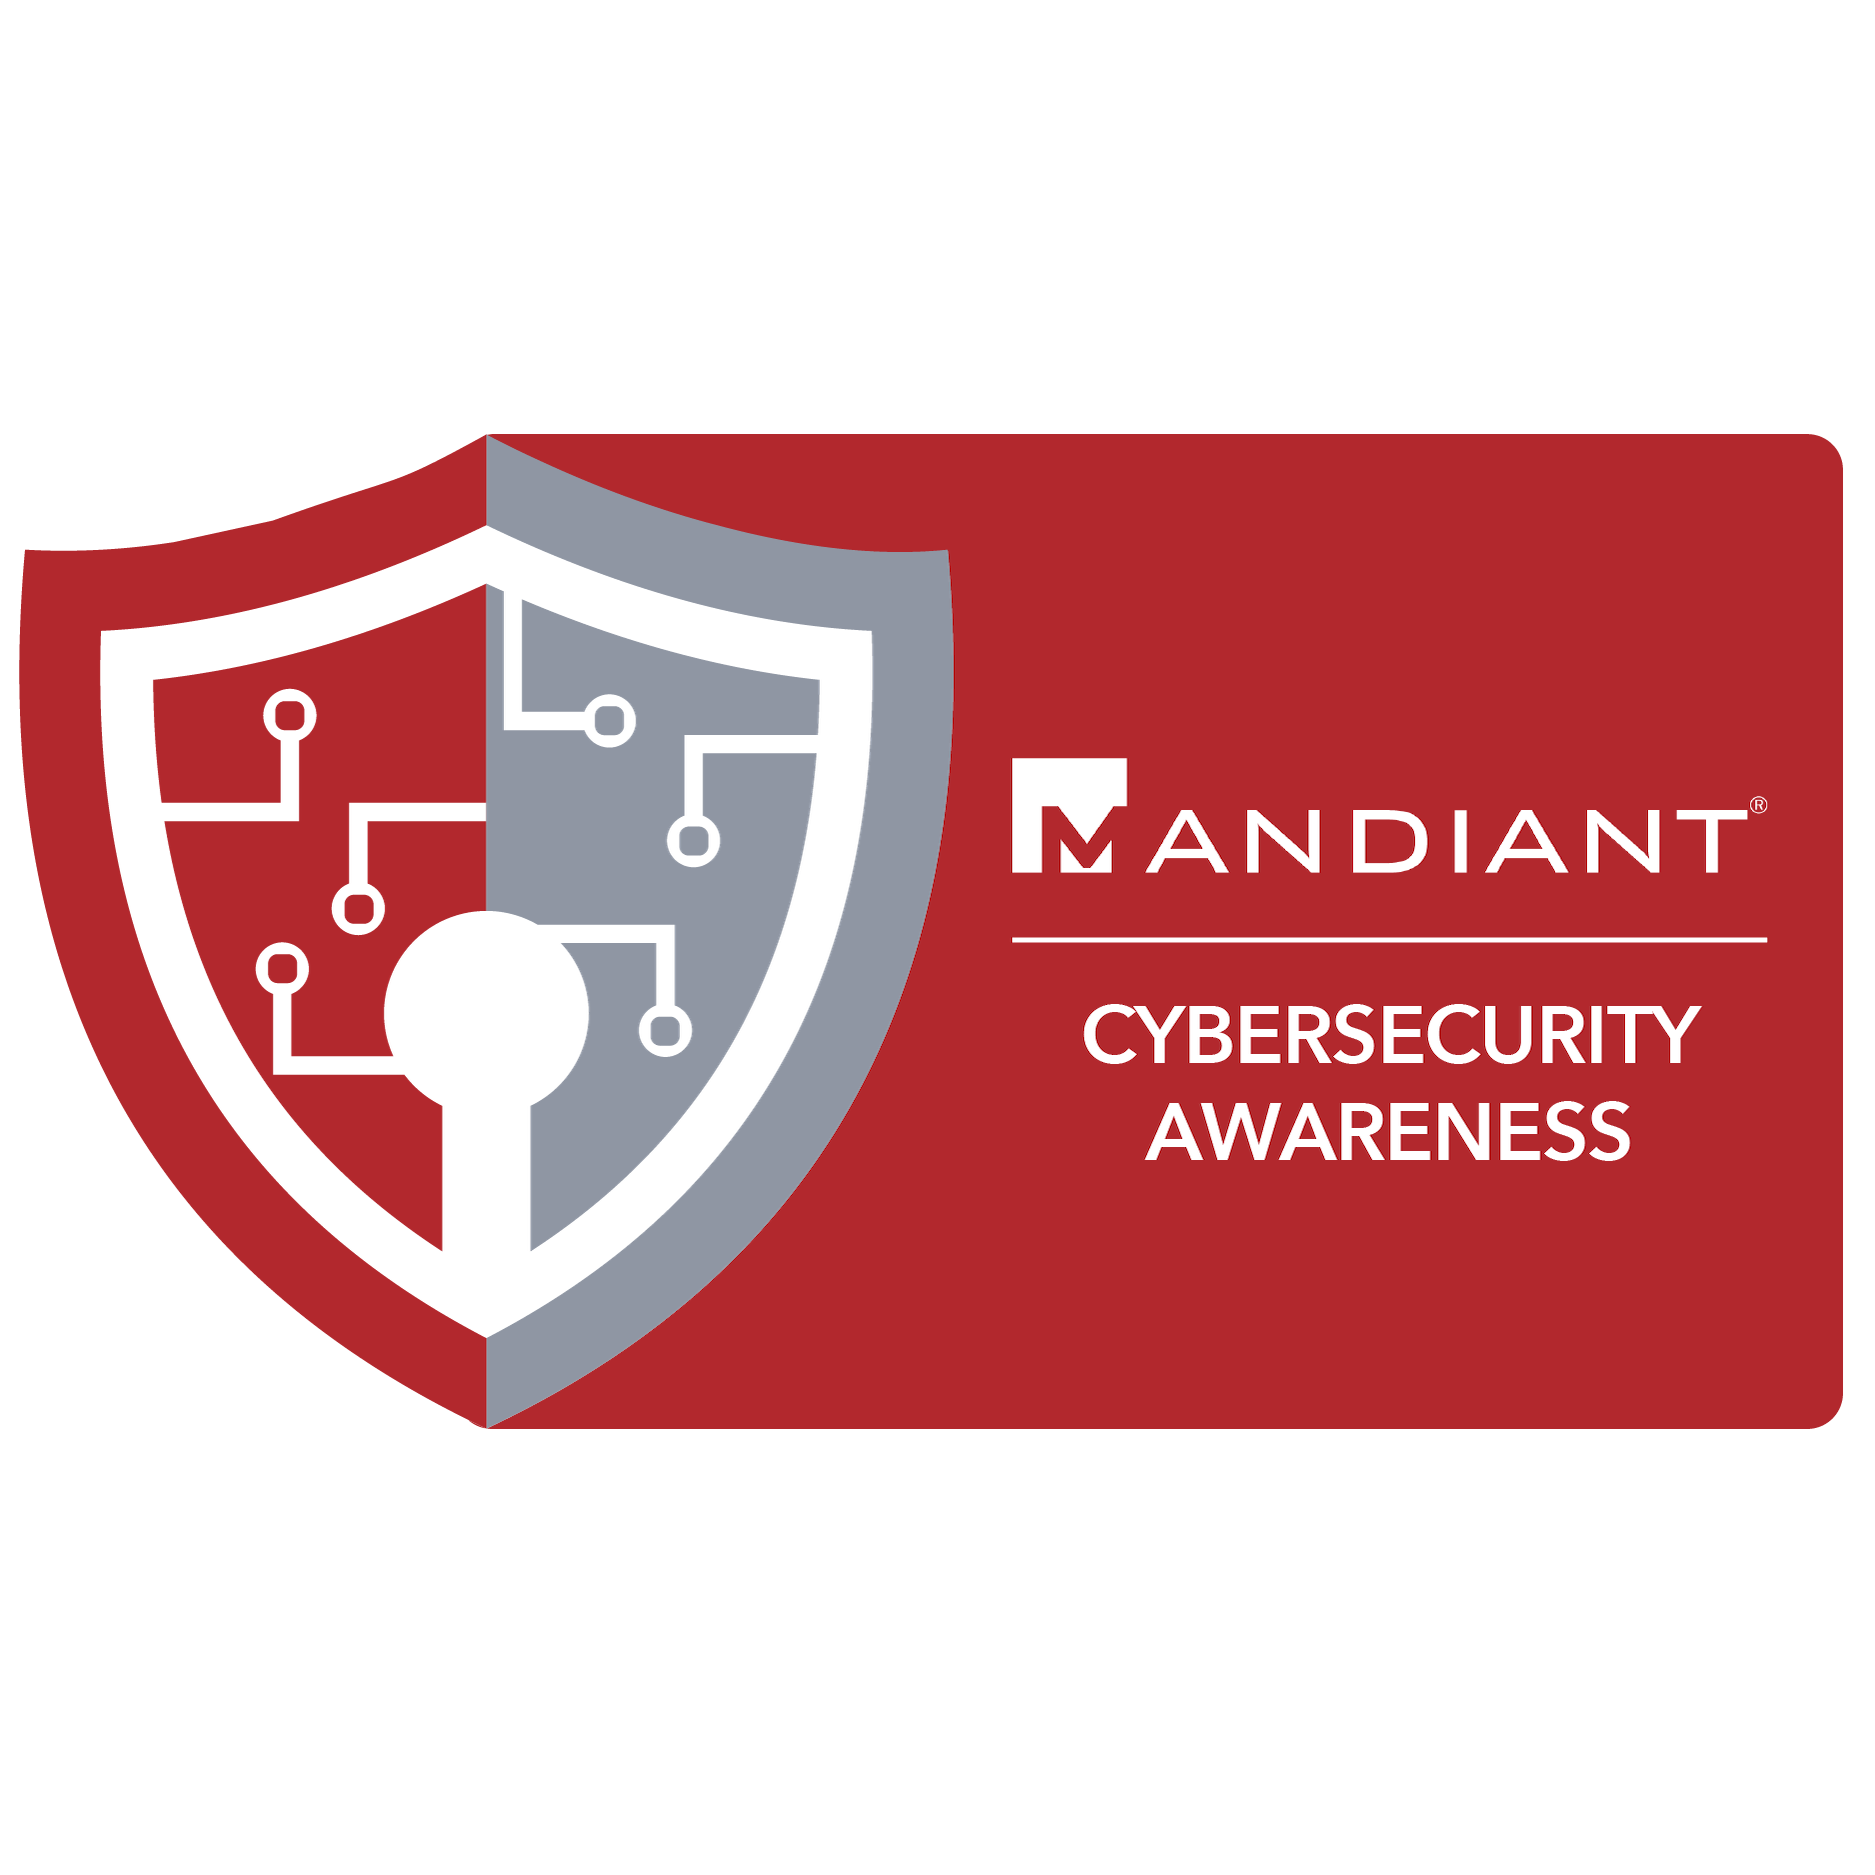 digital badge for Cybersecurity Awareness from EmergingEd powered by FireEye